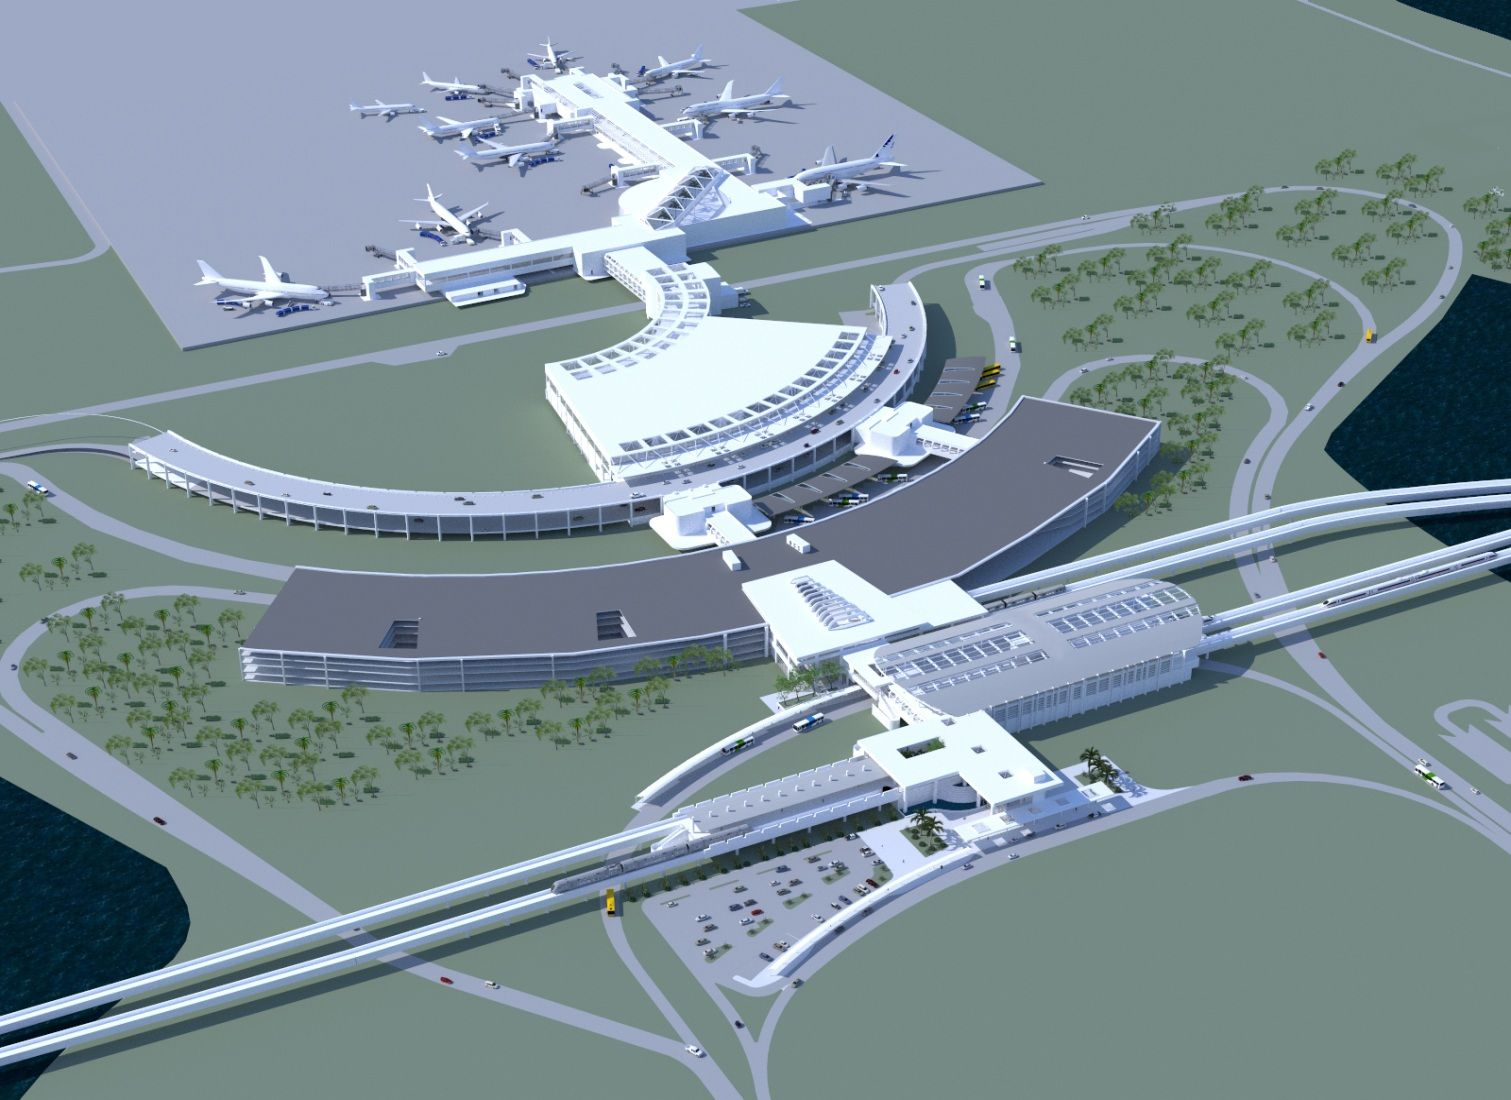 Orlando International Airport Proposal Showing The Beginning Stages Of A New South Terminal Complex Muslim Prayer Prayer Room Airport Design